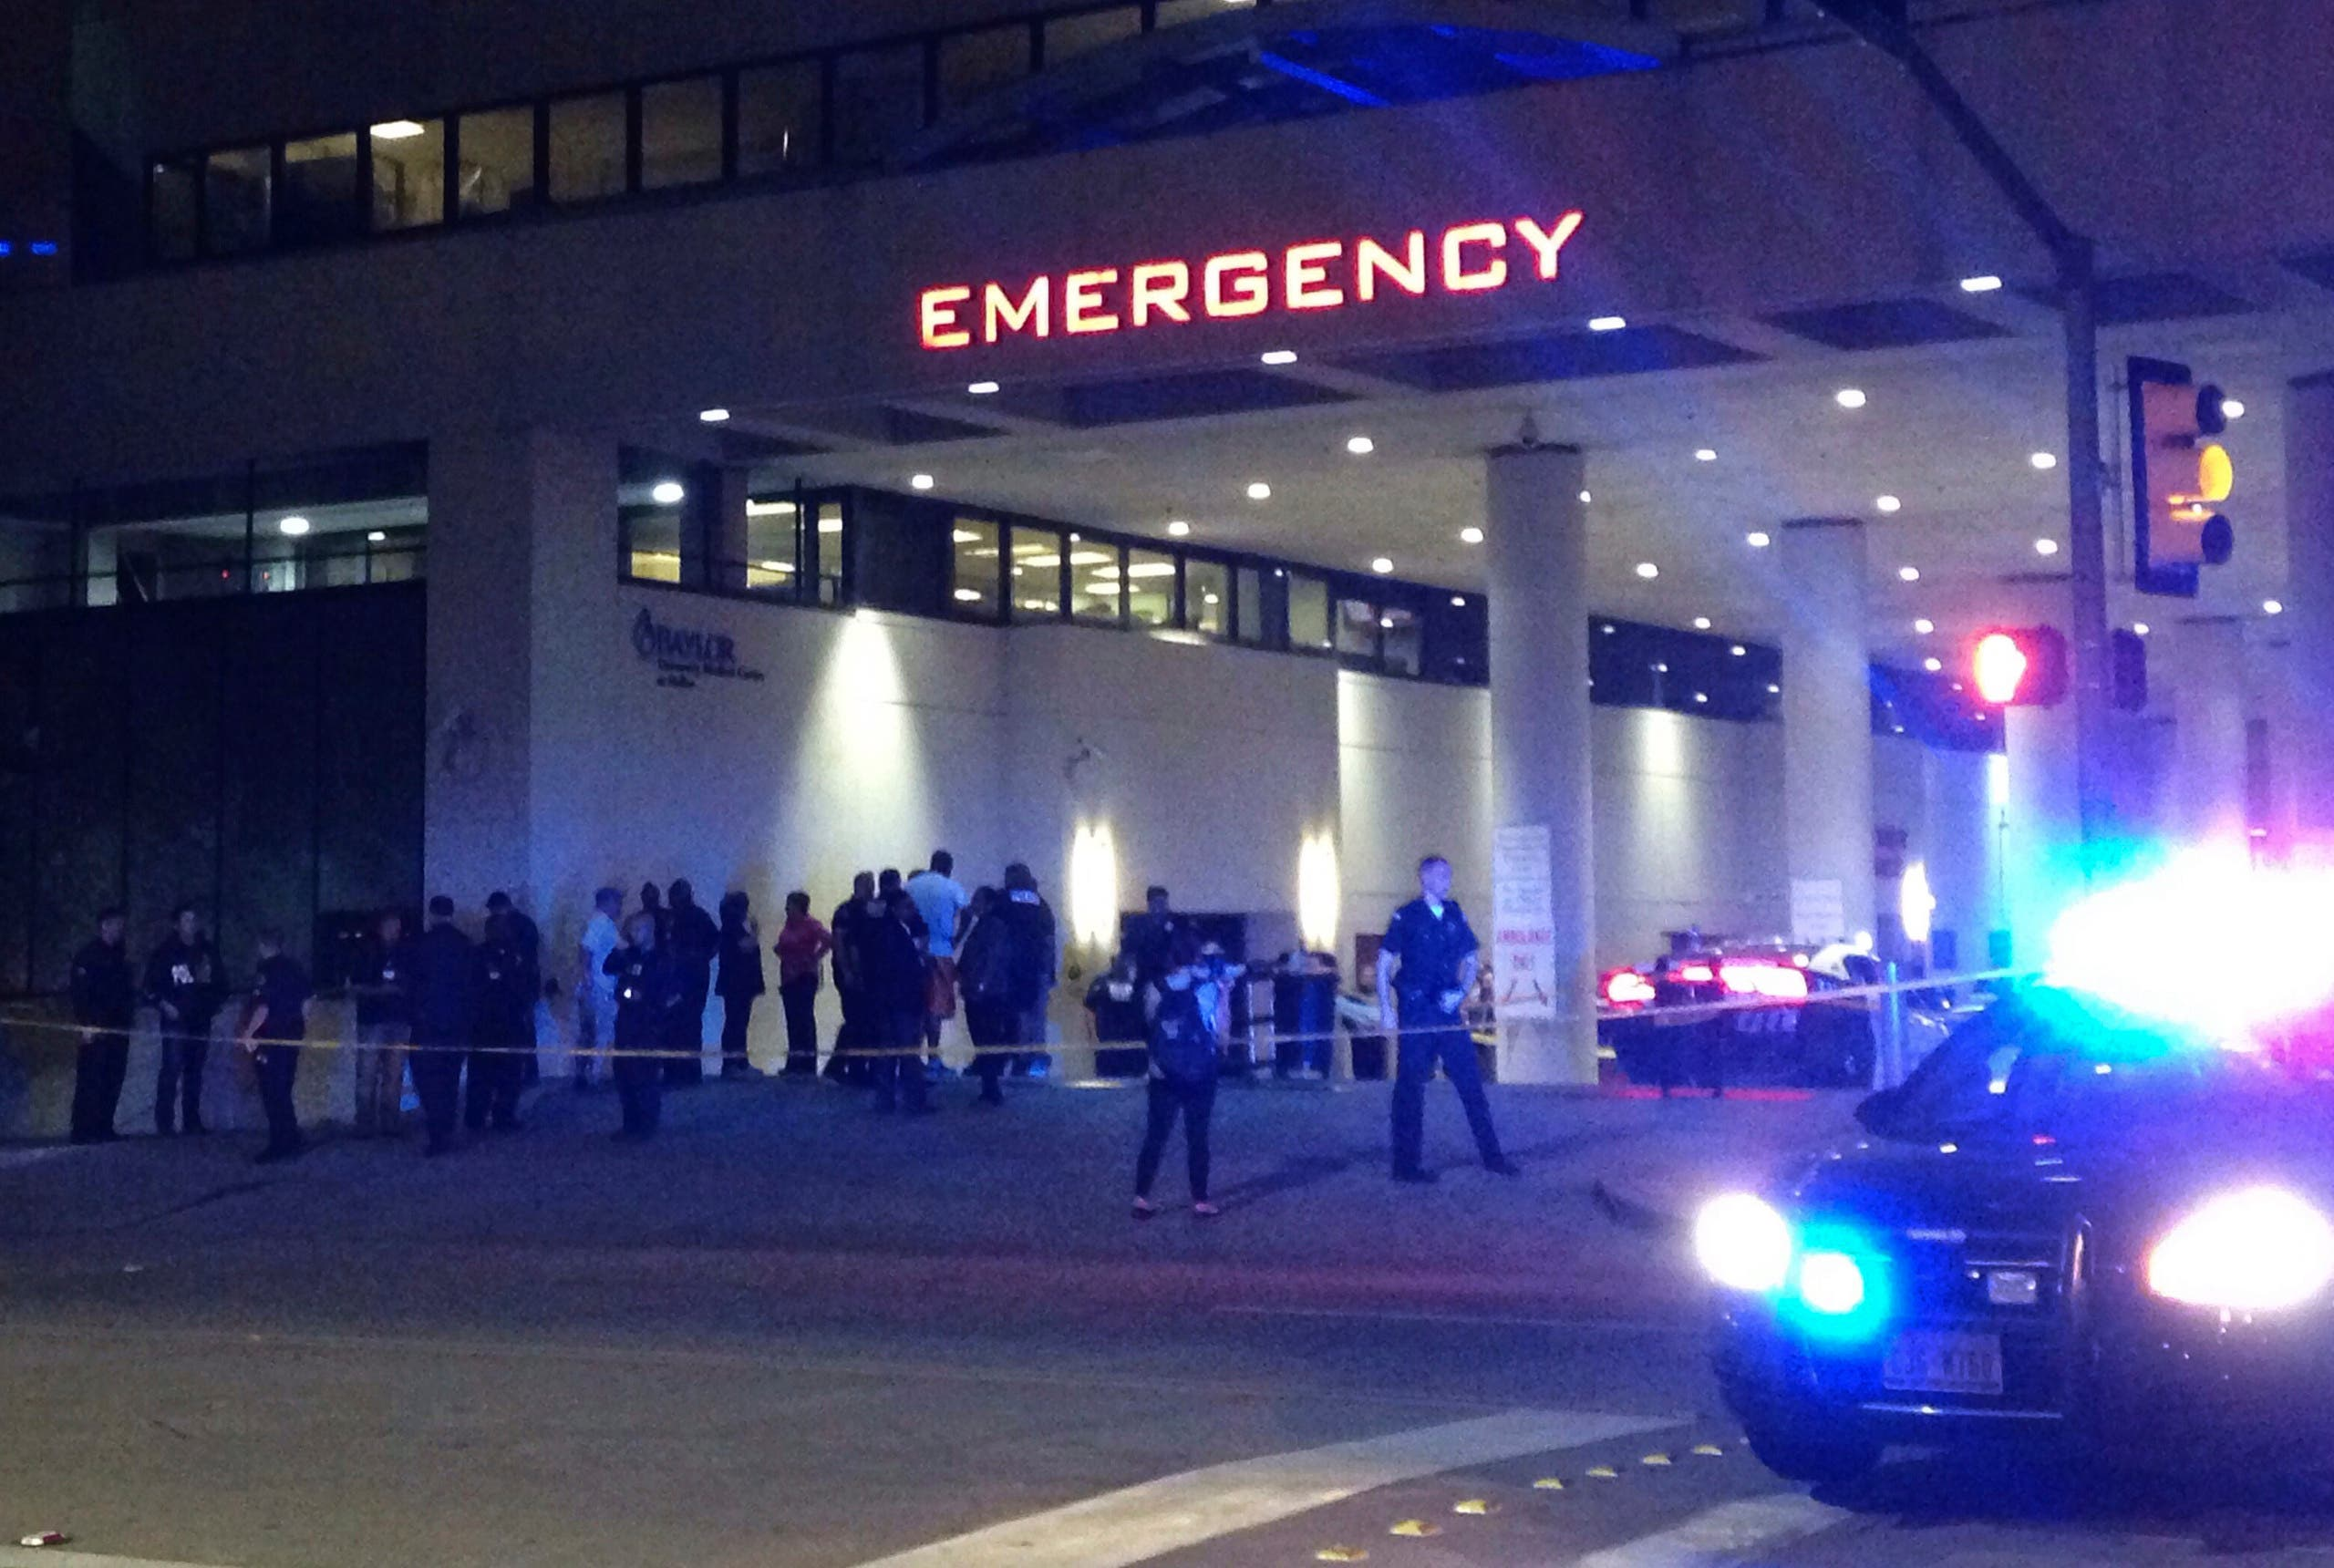 Police and others gather at the emergency entrance to Baylor Medical Center in Dallas, where several police officers were taken after shootings Thursday, July 7, 2016. (AP)